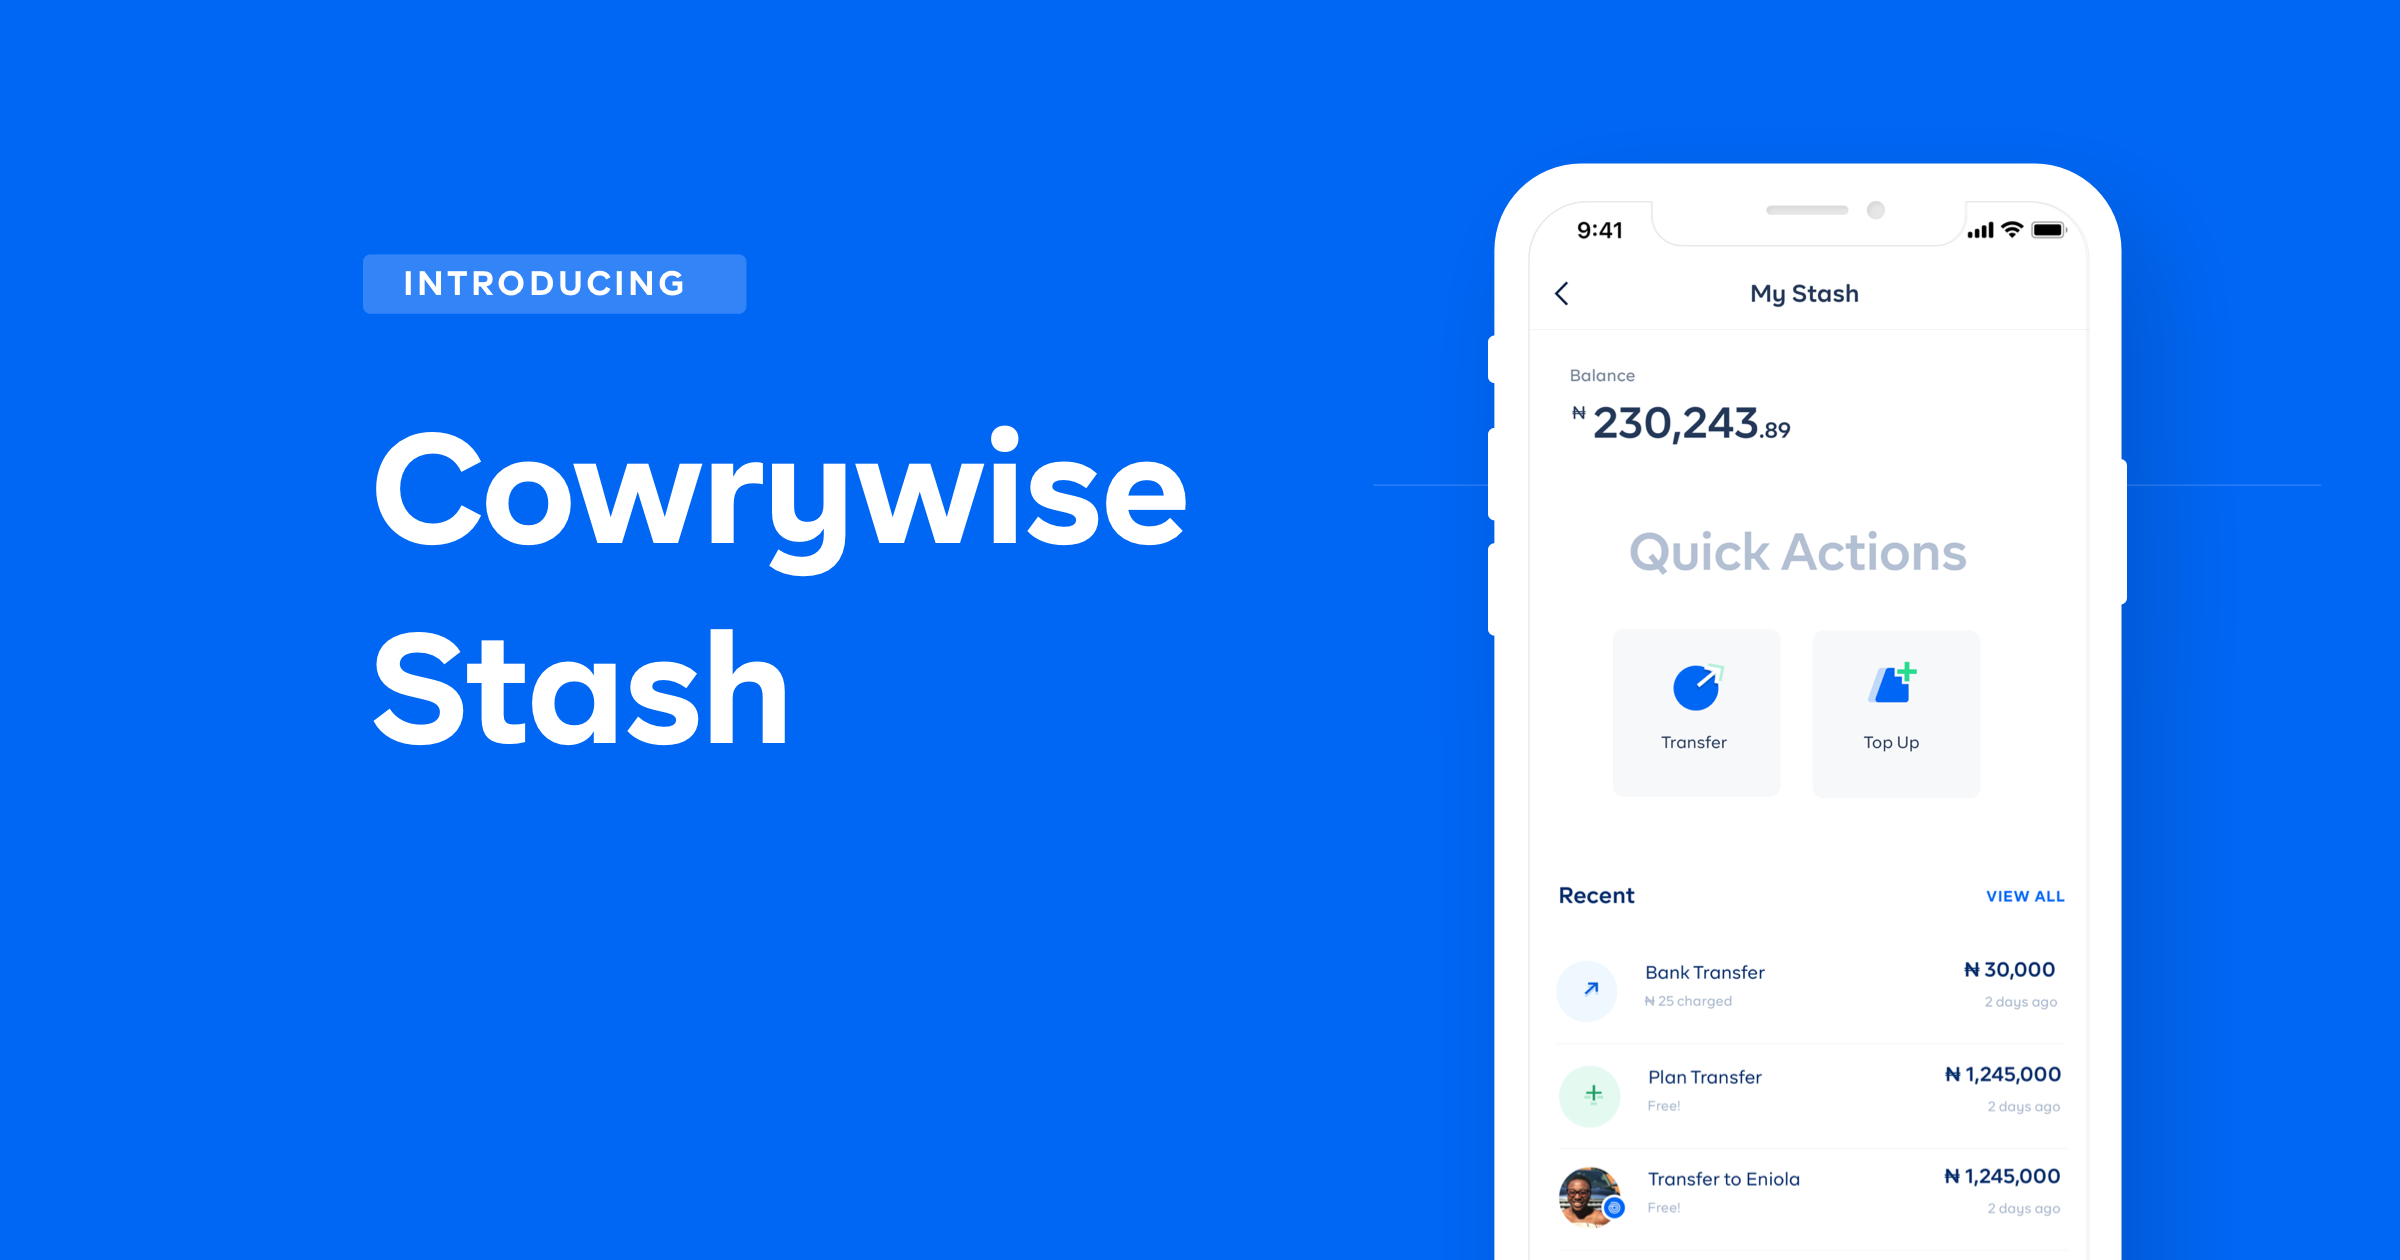 Introducing Stash: More Options To Fund Your Cowrywise Plans